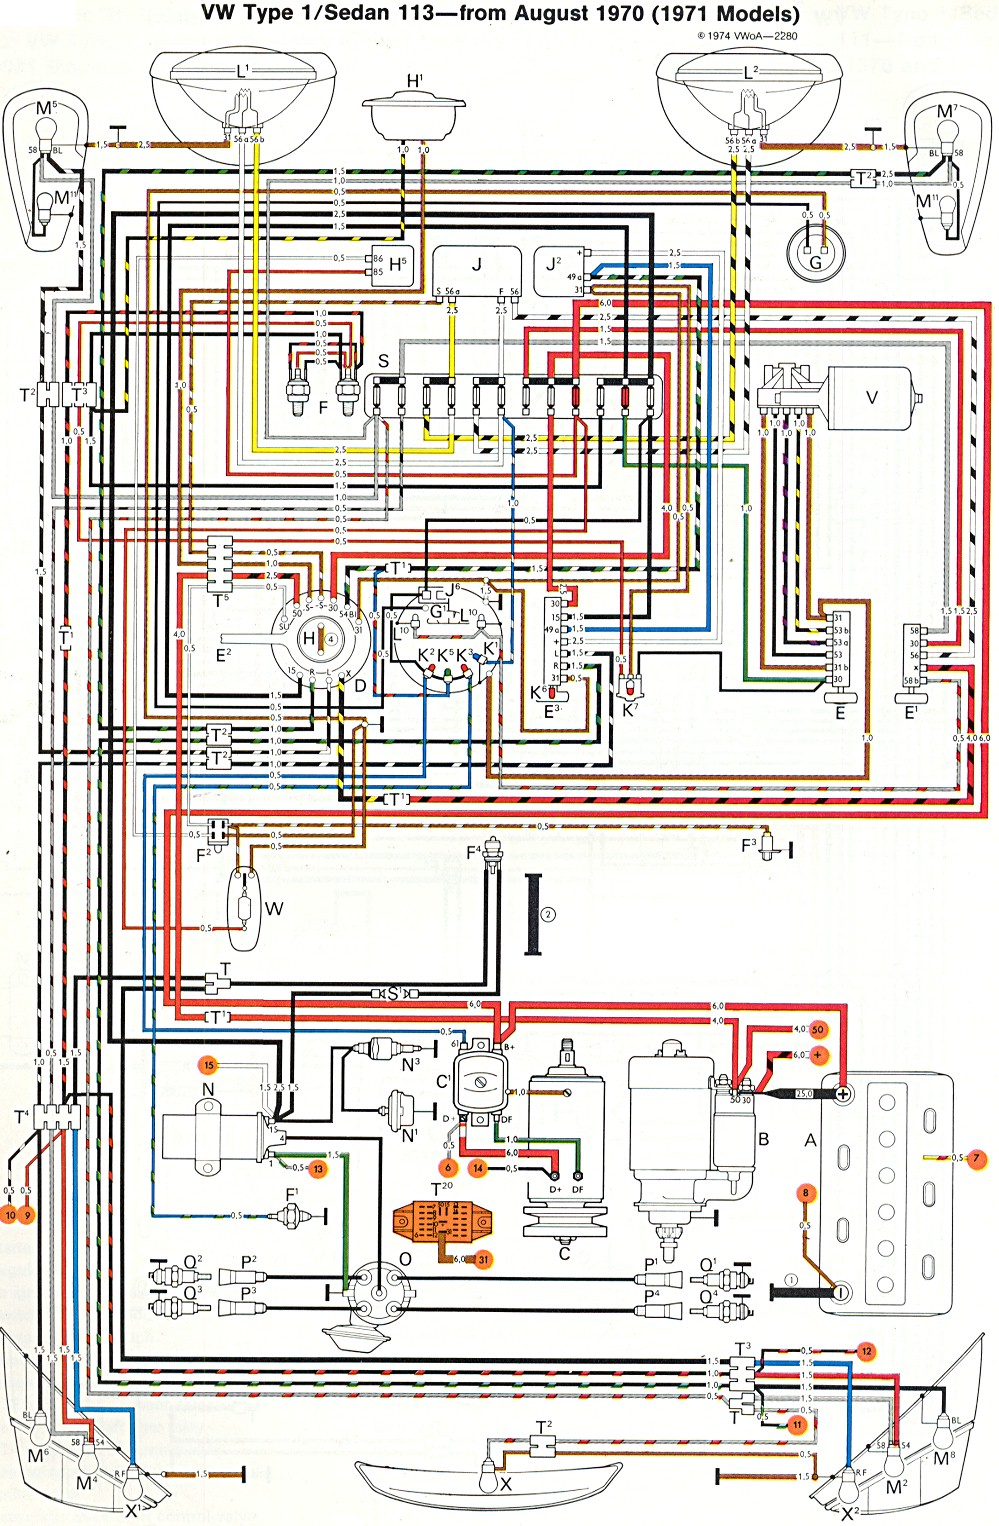 bug_super_71 1971 super beetle wiring diagram thegoldenbug com 1973 vw wiring diagram at nearapp.co